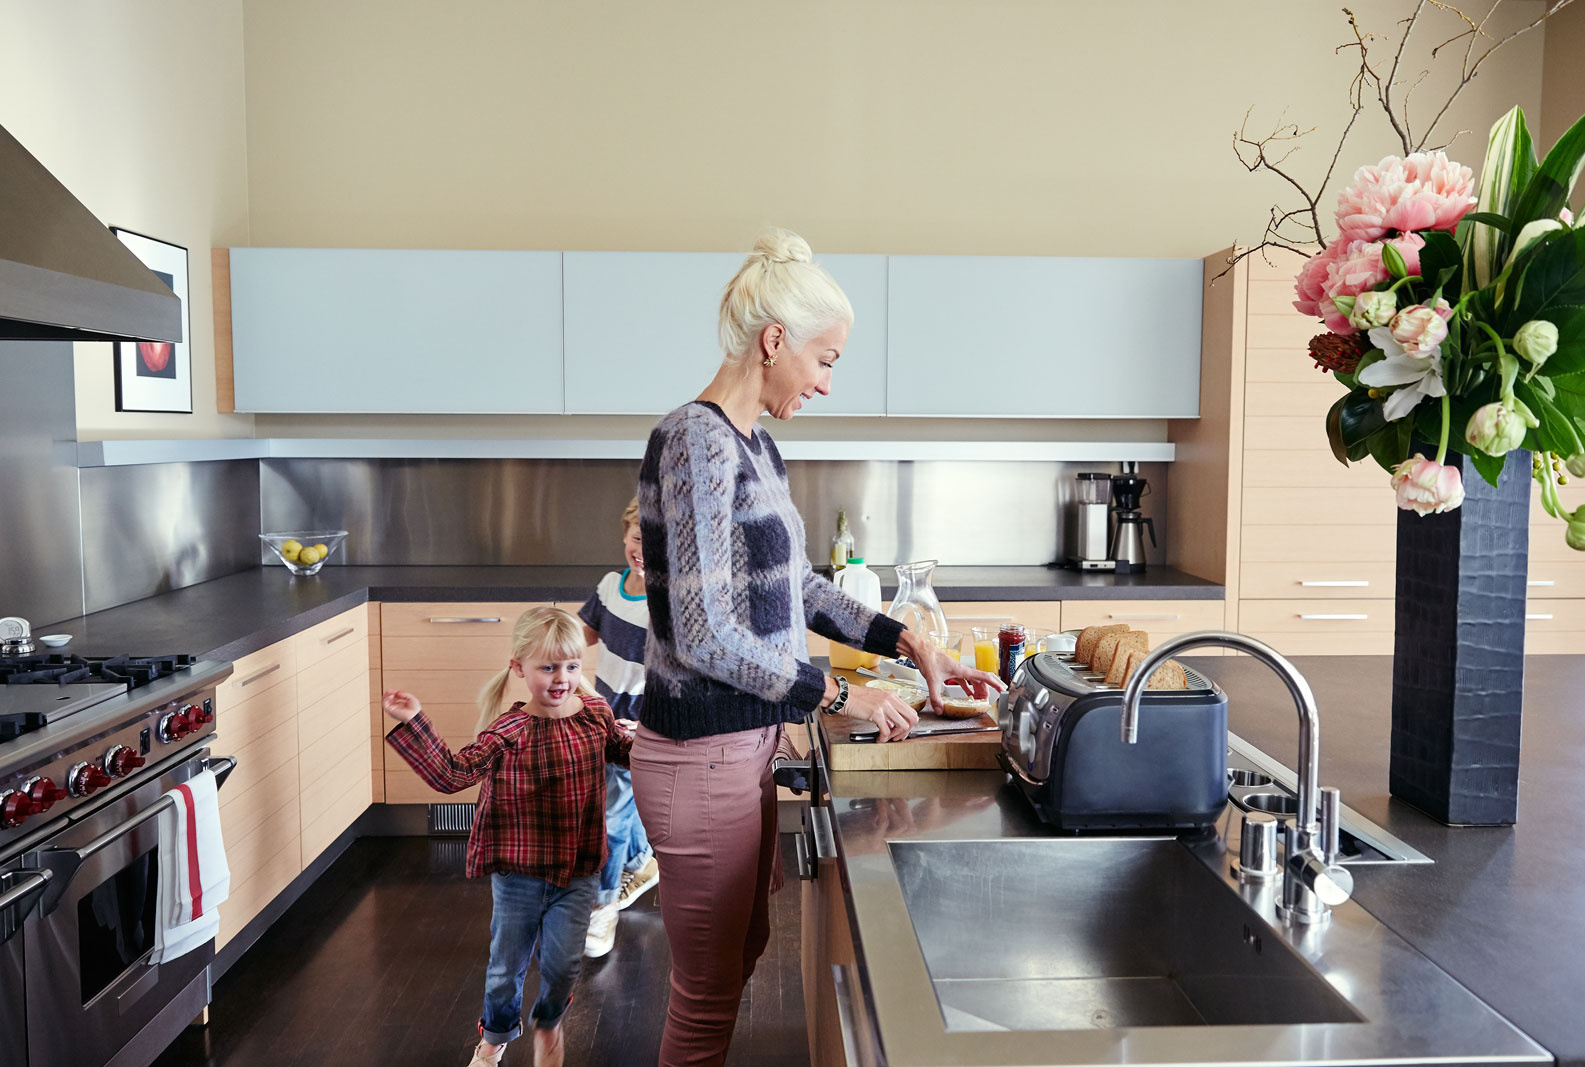 Mom making dinner in kitchen  | Dovis Bird Agency Photography